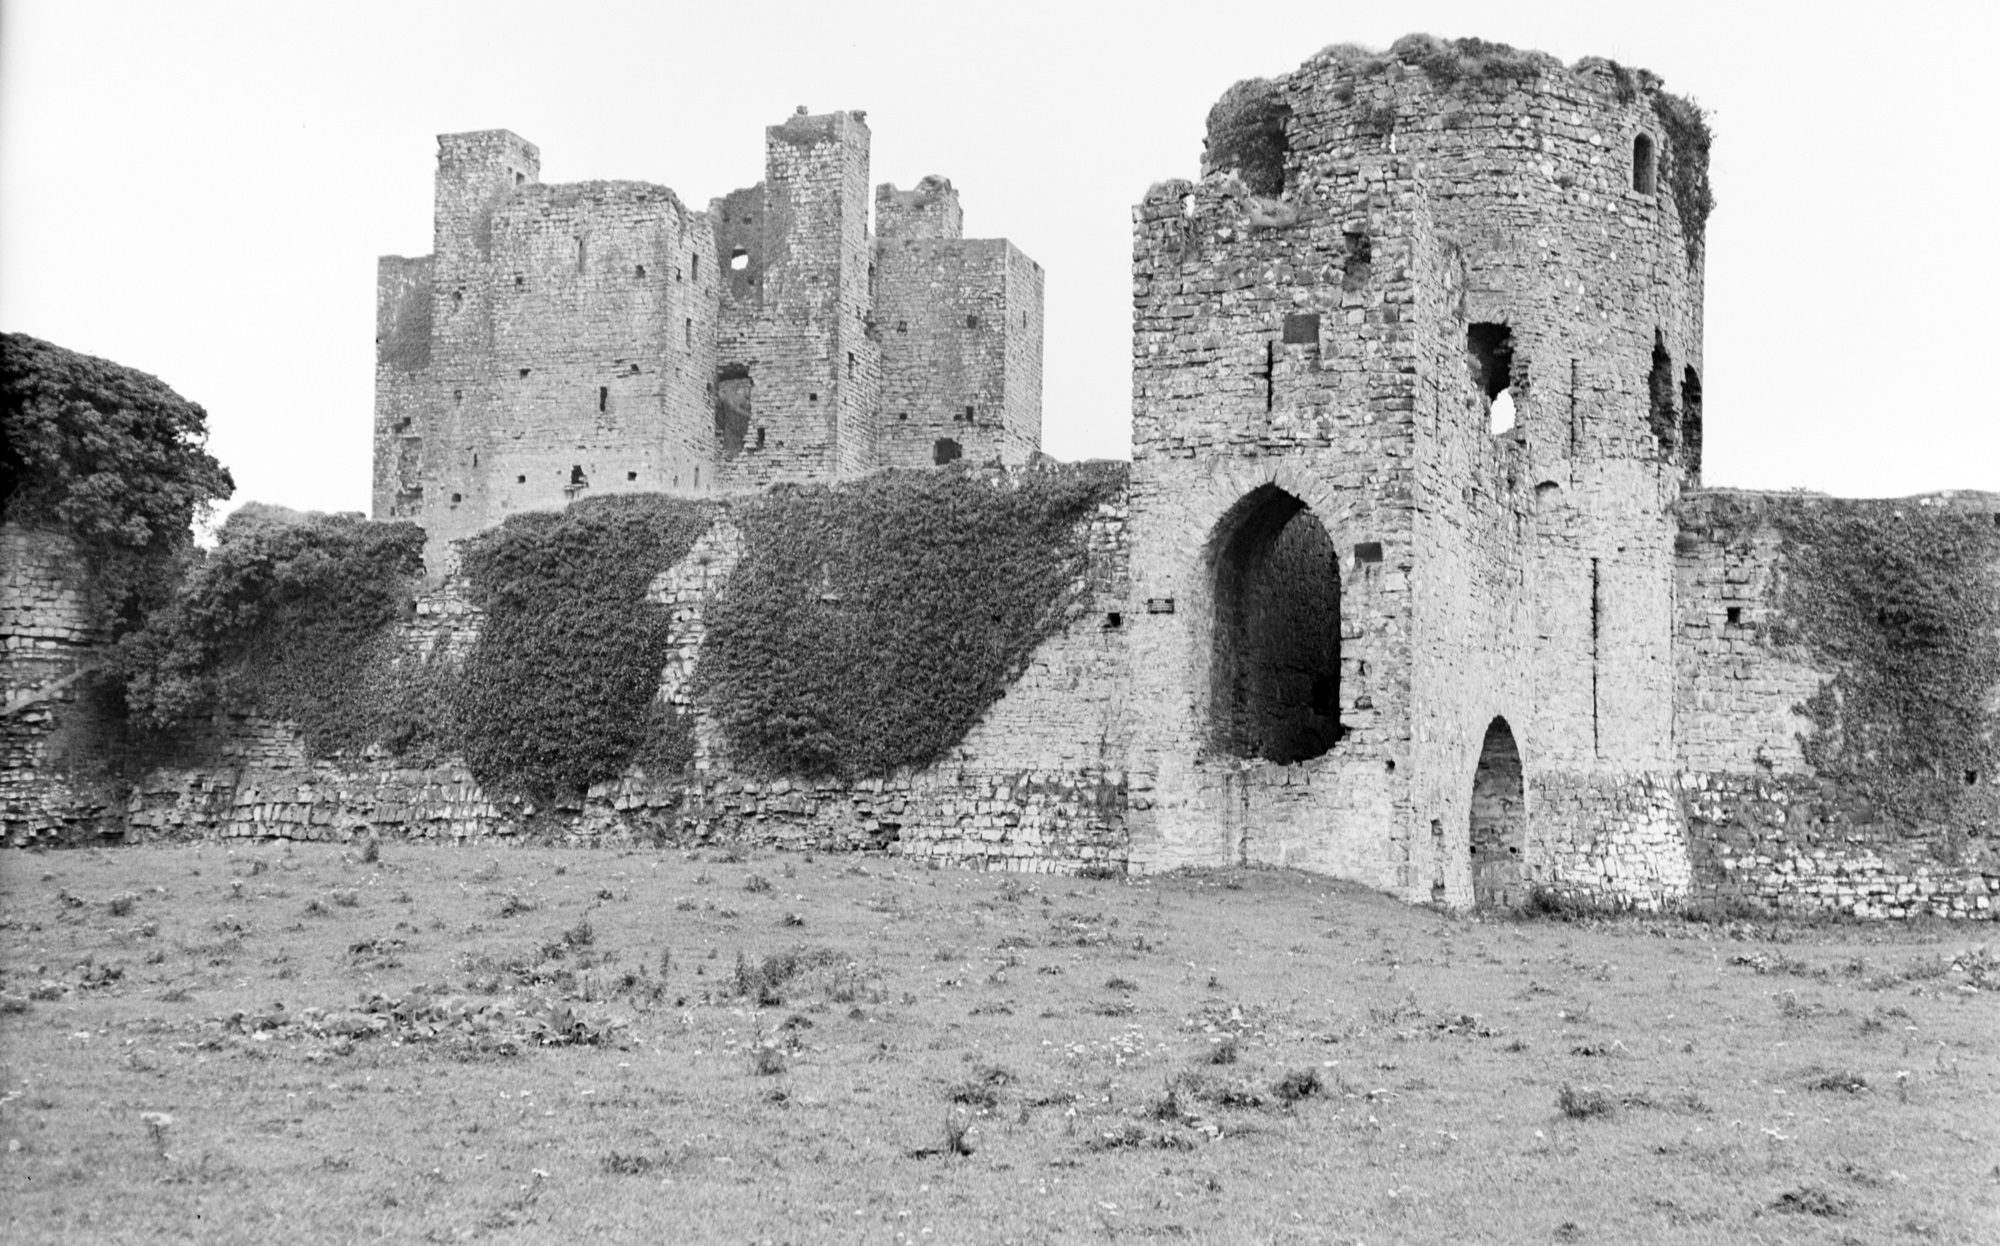 Trim Castle, Trim, Co. Meath.